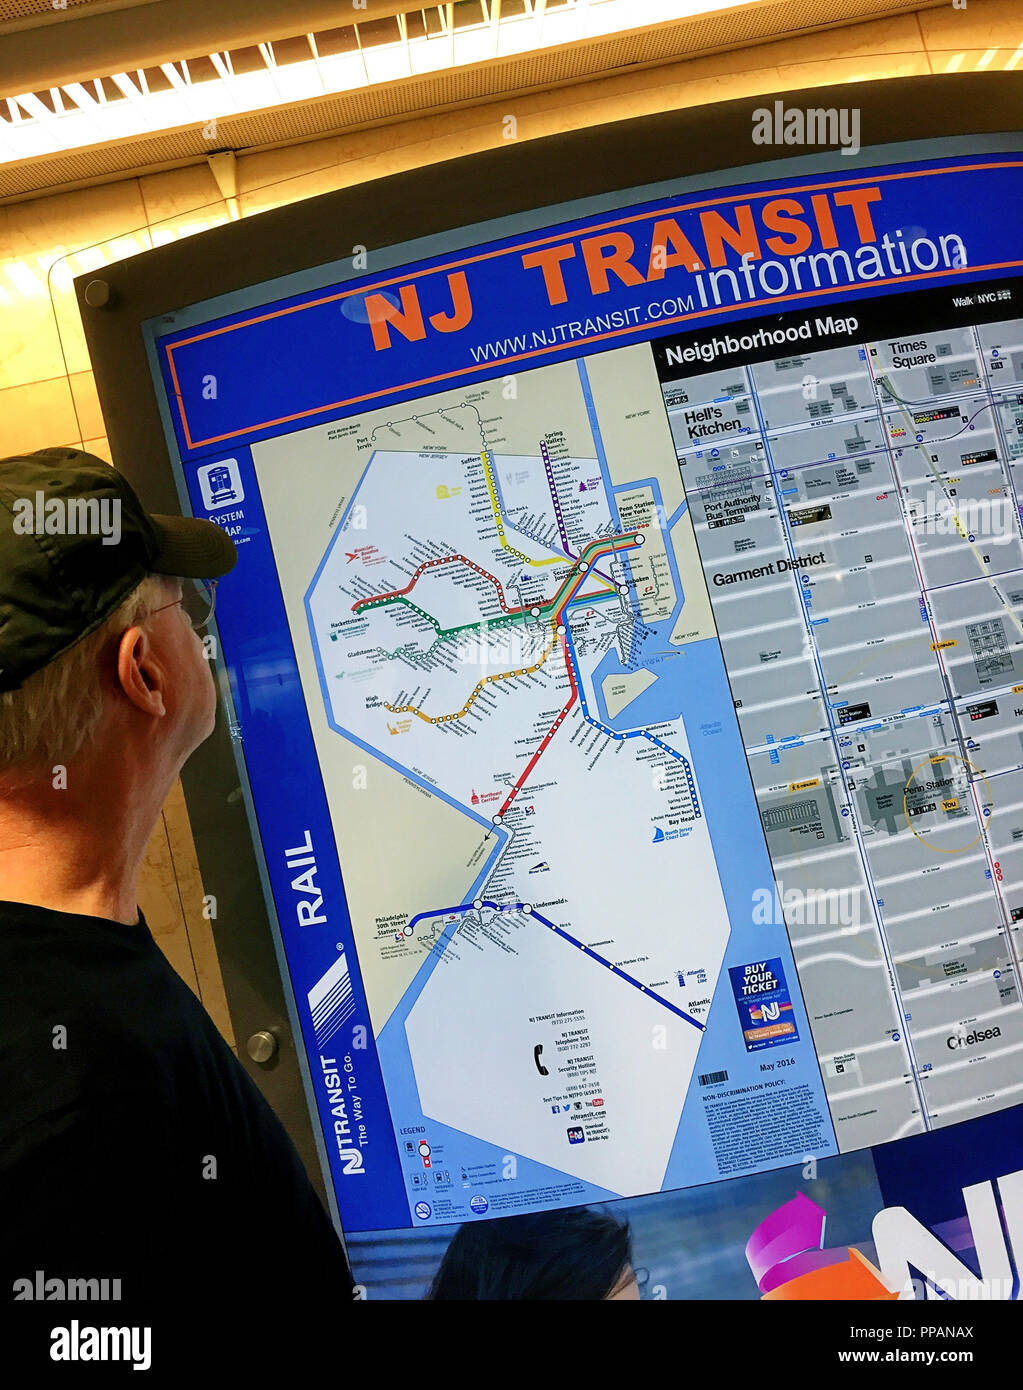 New Jersey Transit Map, Penn Station, NYC Stock Photo: 220283138 - Alamy